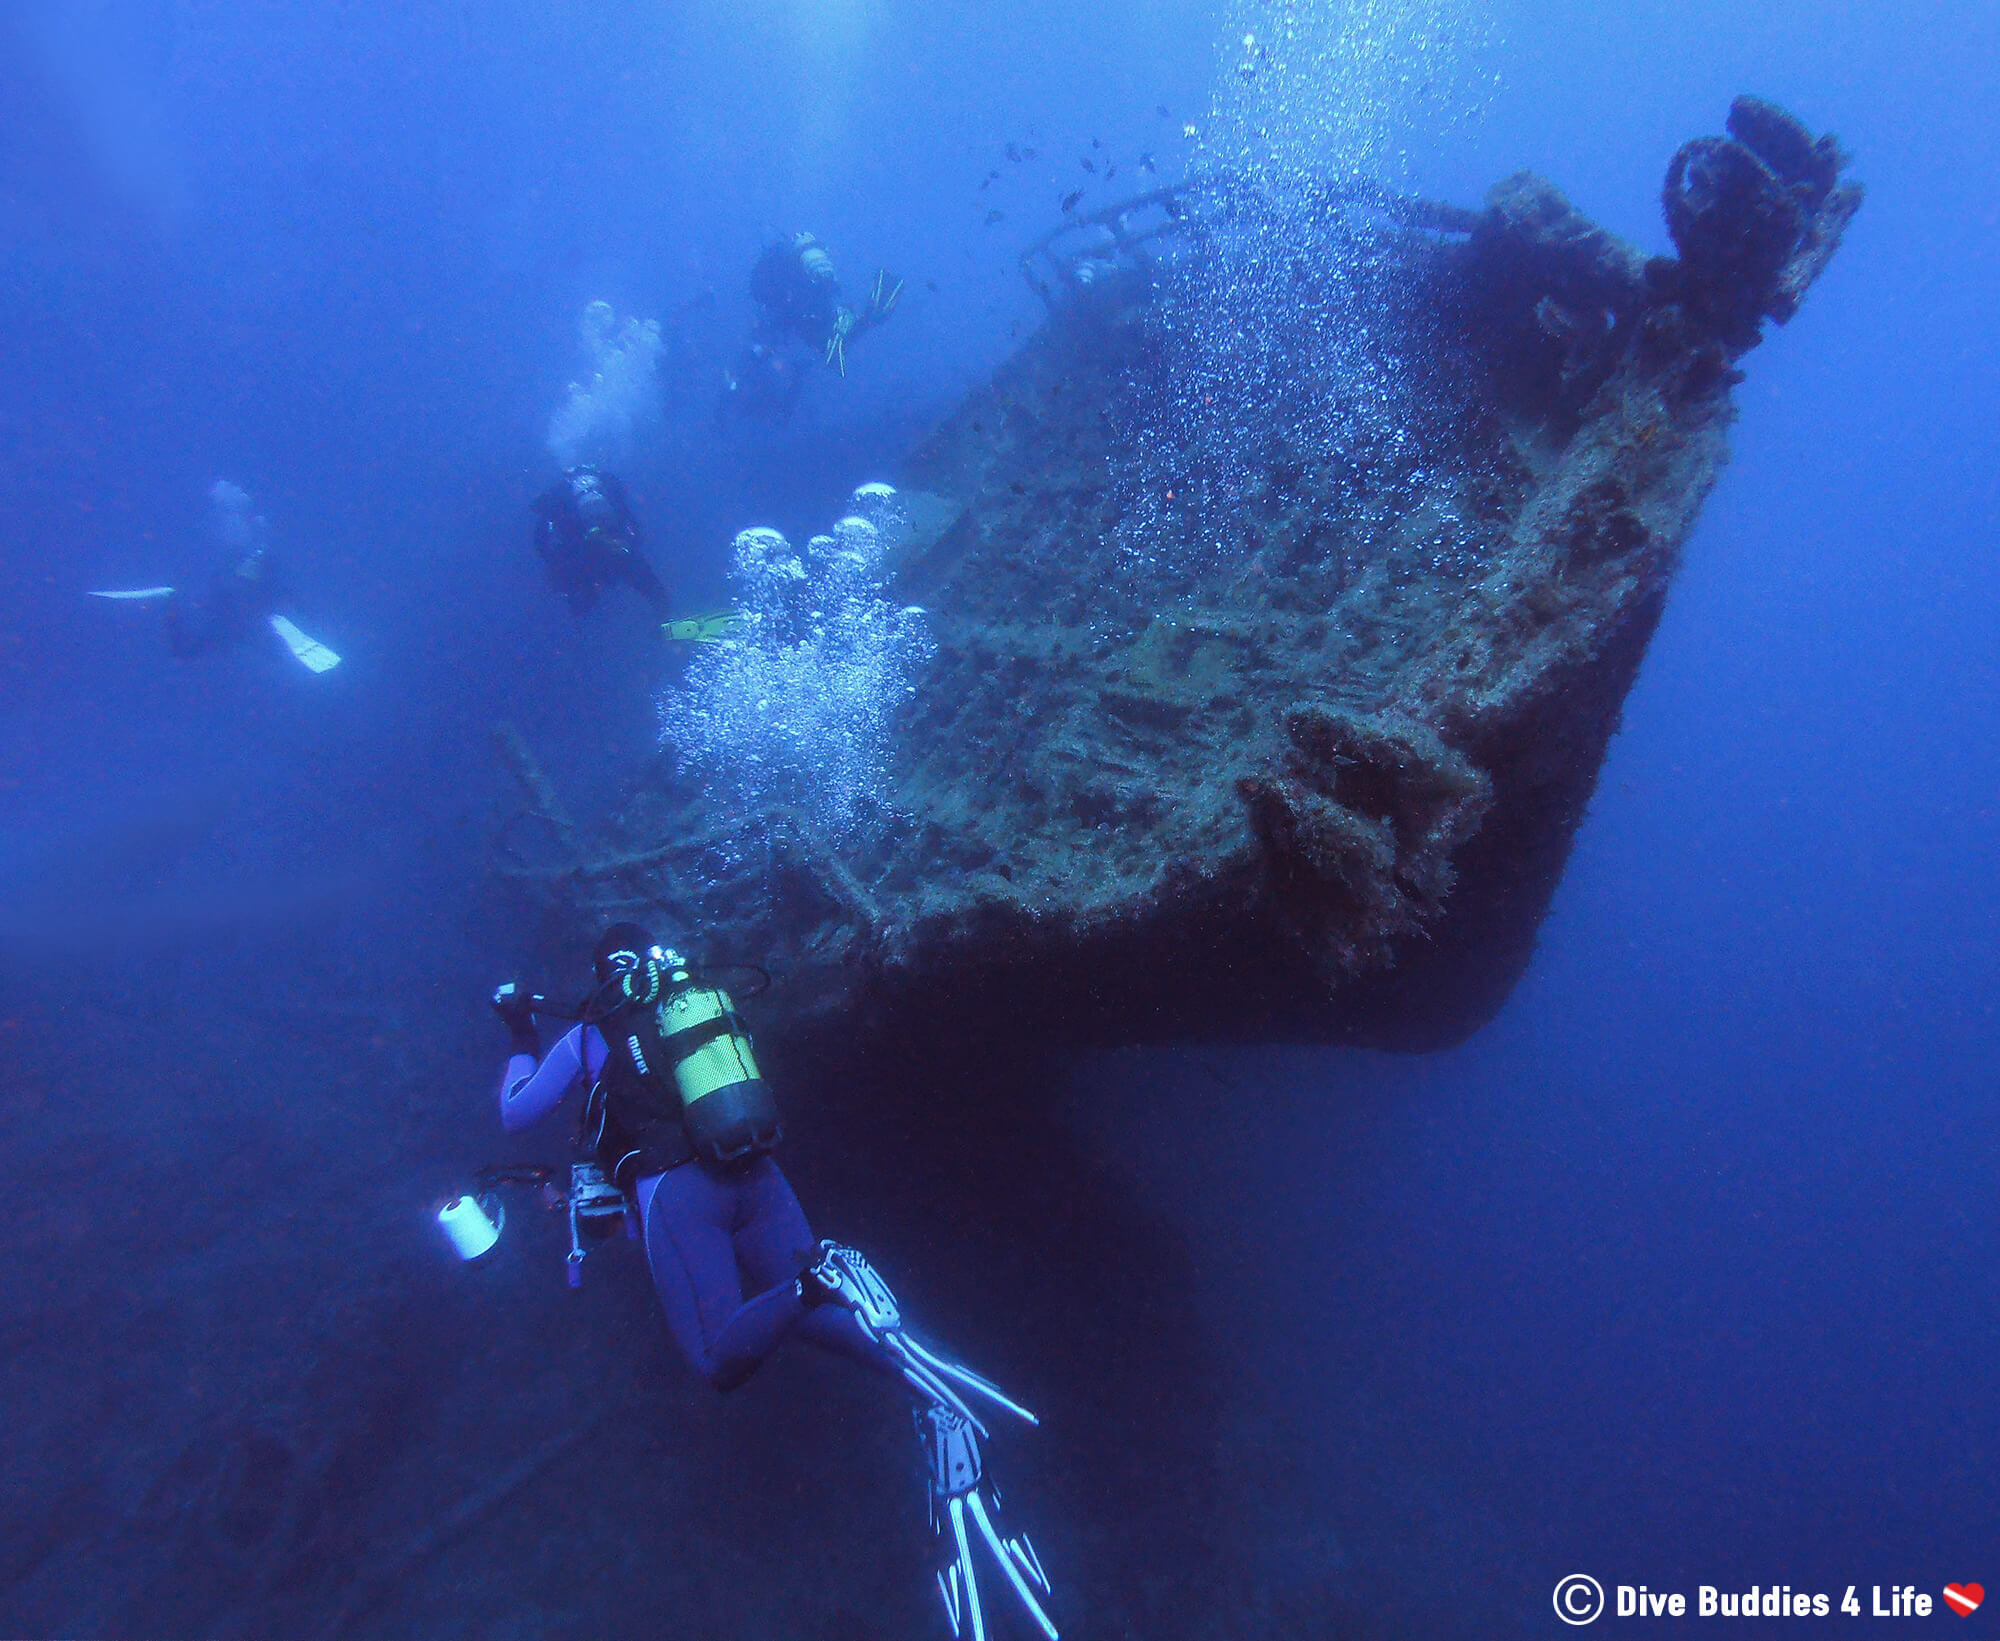 Scuba Divers And A Shipwreck At The Bottom Of Puerto Del Carmen On Lanzarote, Spain's Canary Islands